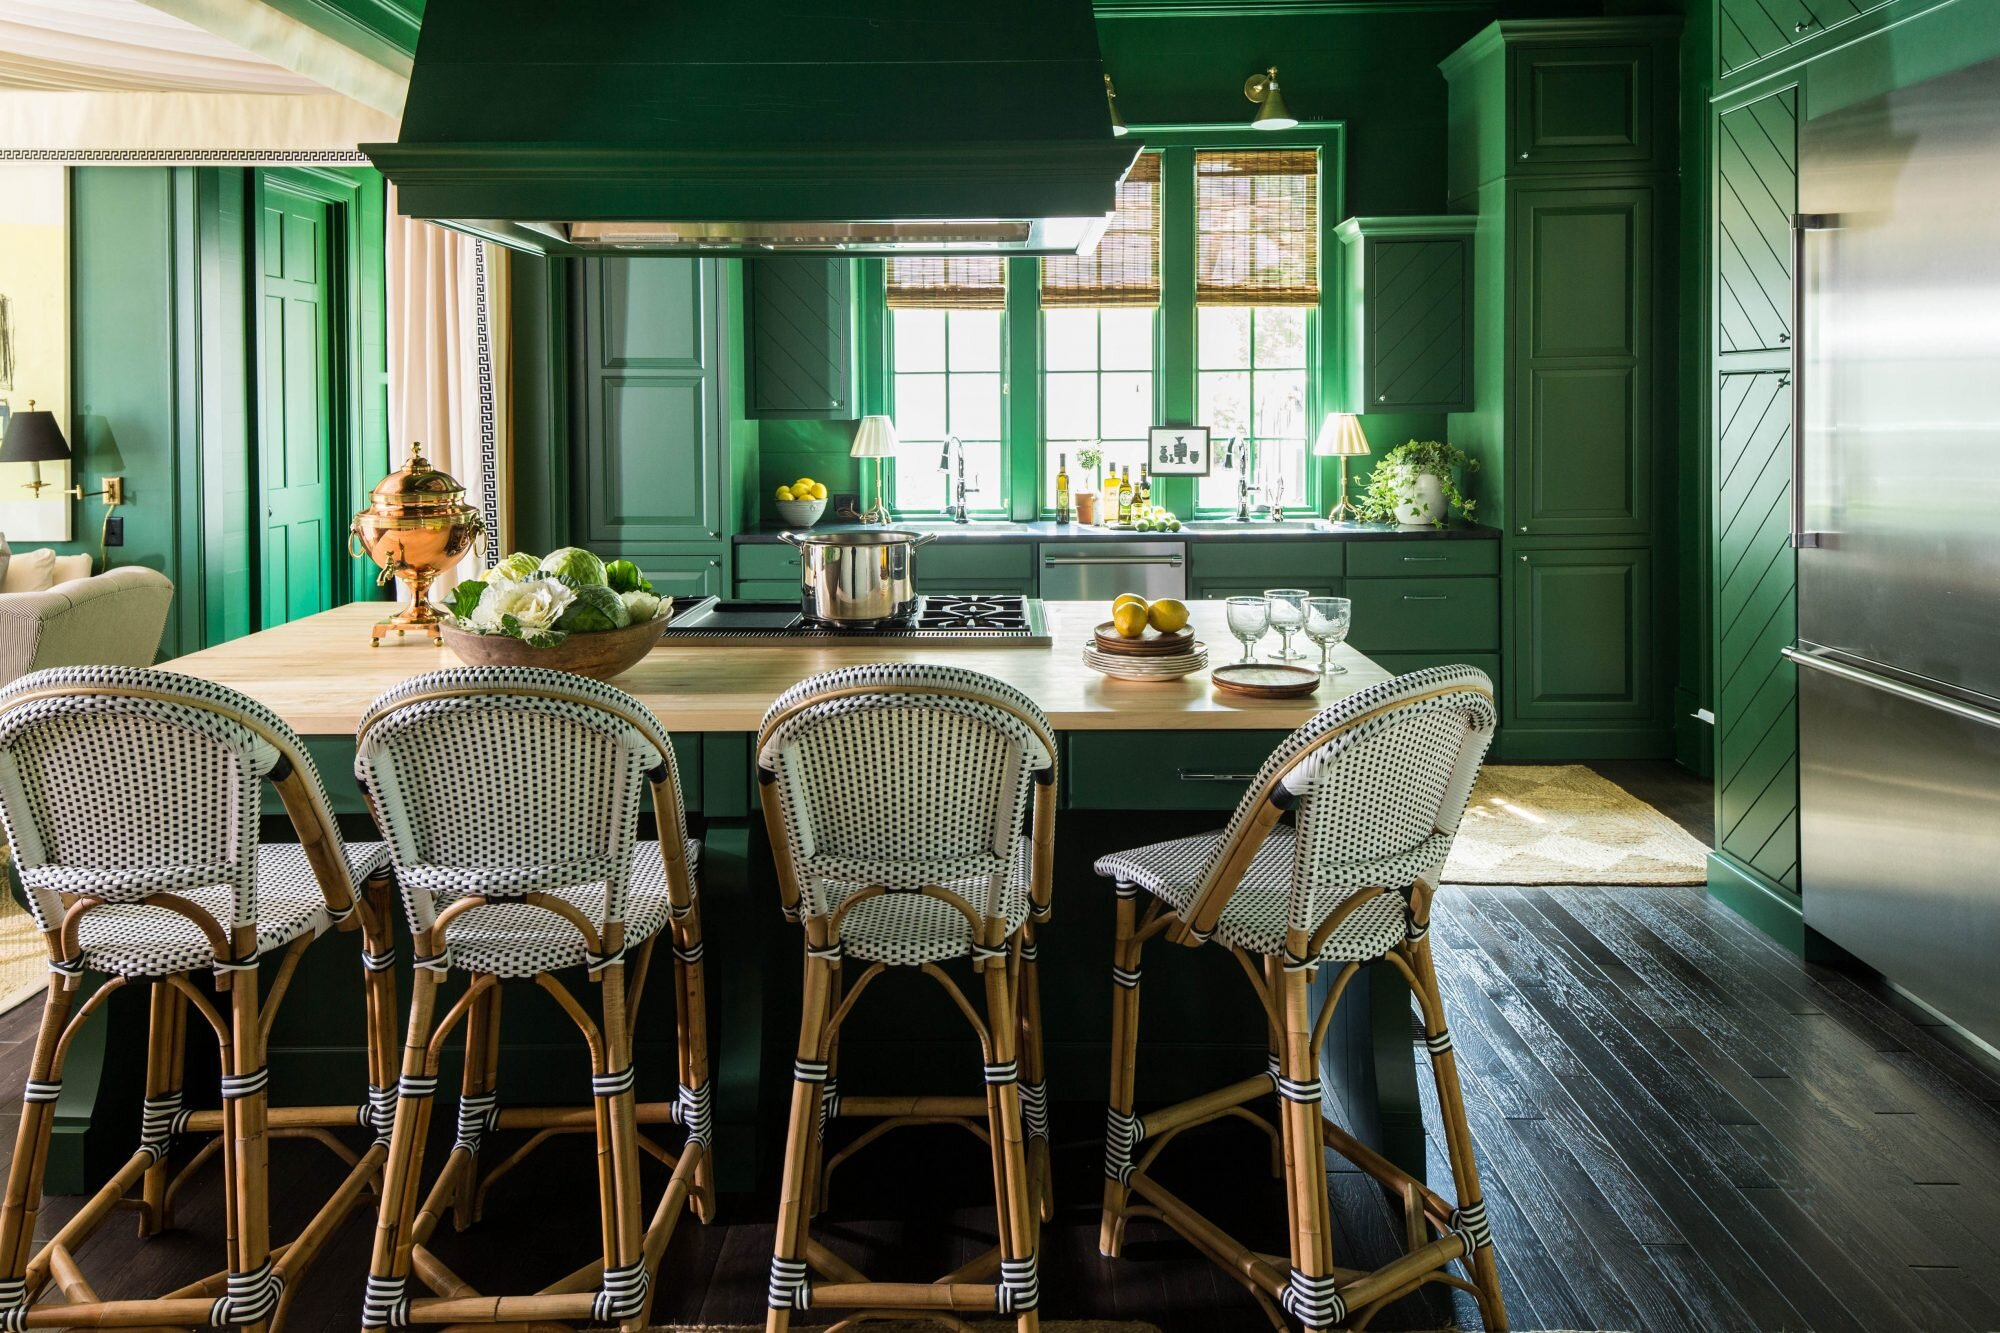 Kitchen Wall Colors Are Getting Moody in 2019 | Southern Living